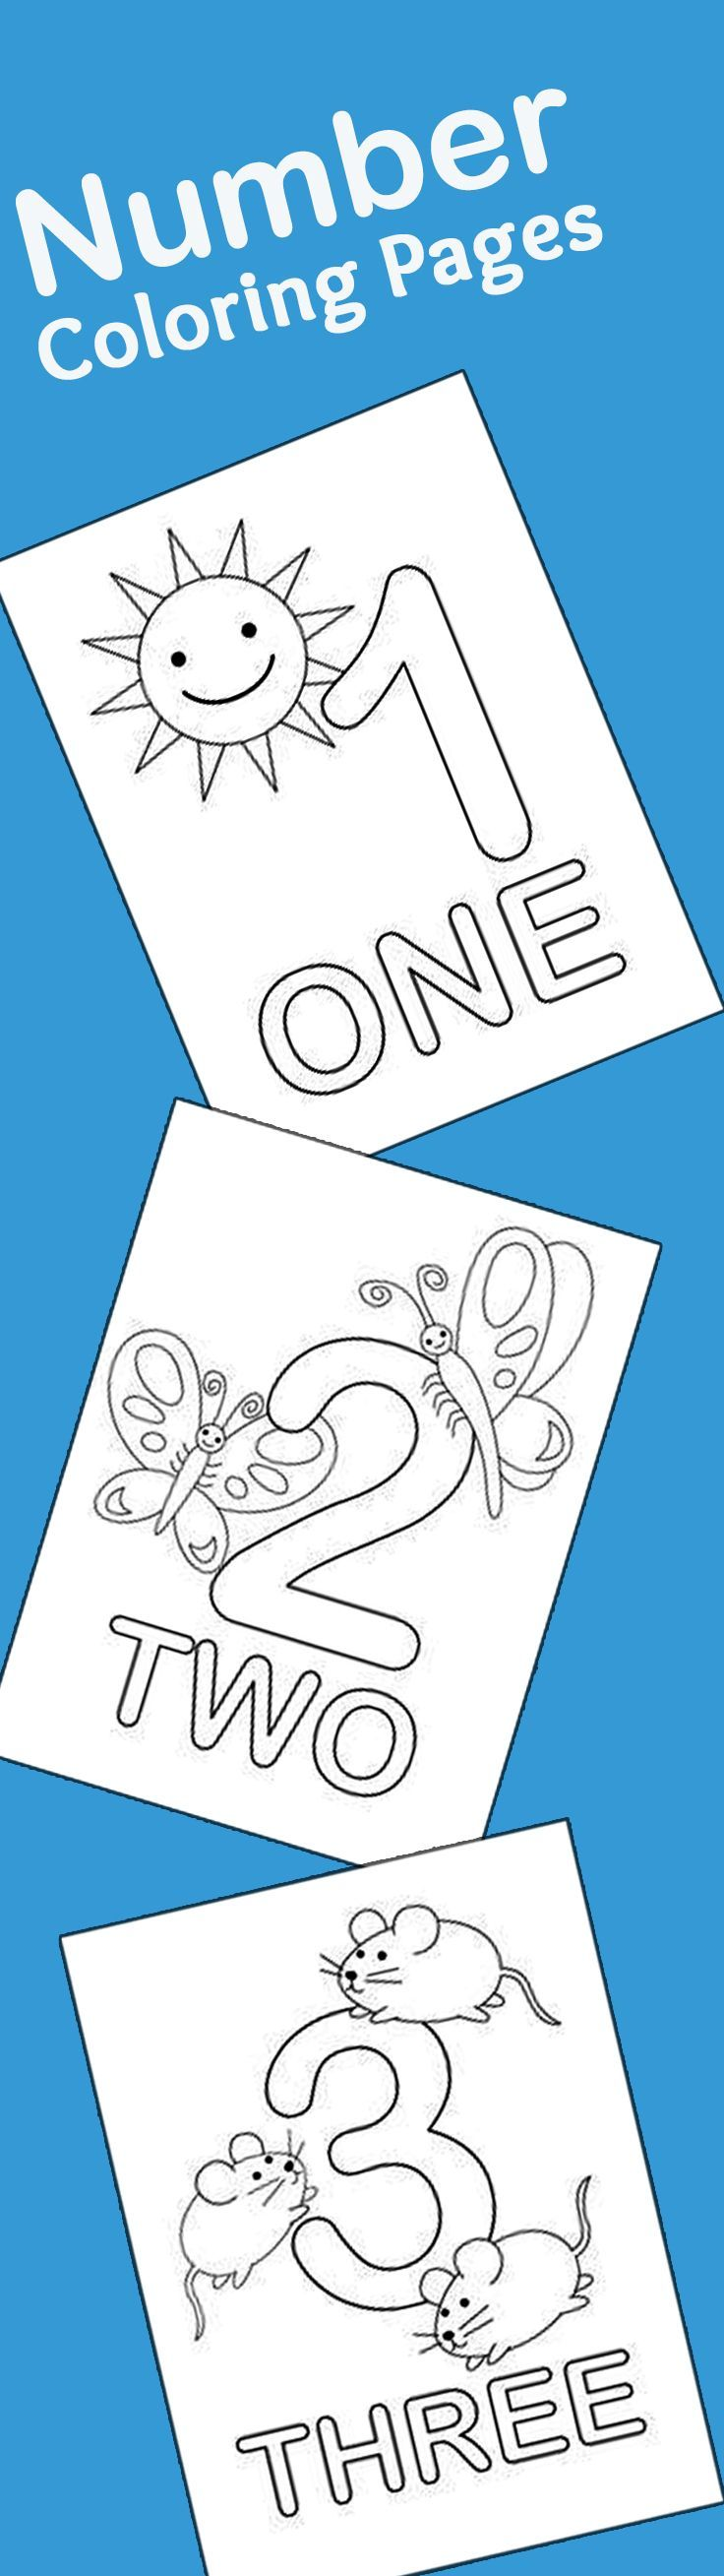 21 Easy To Learn Number Coloring Pages For Kids: This is a list of the top 21 number coloring sheets that you can use to introduce numbering as well as coloring to your kid